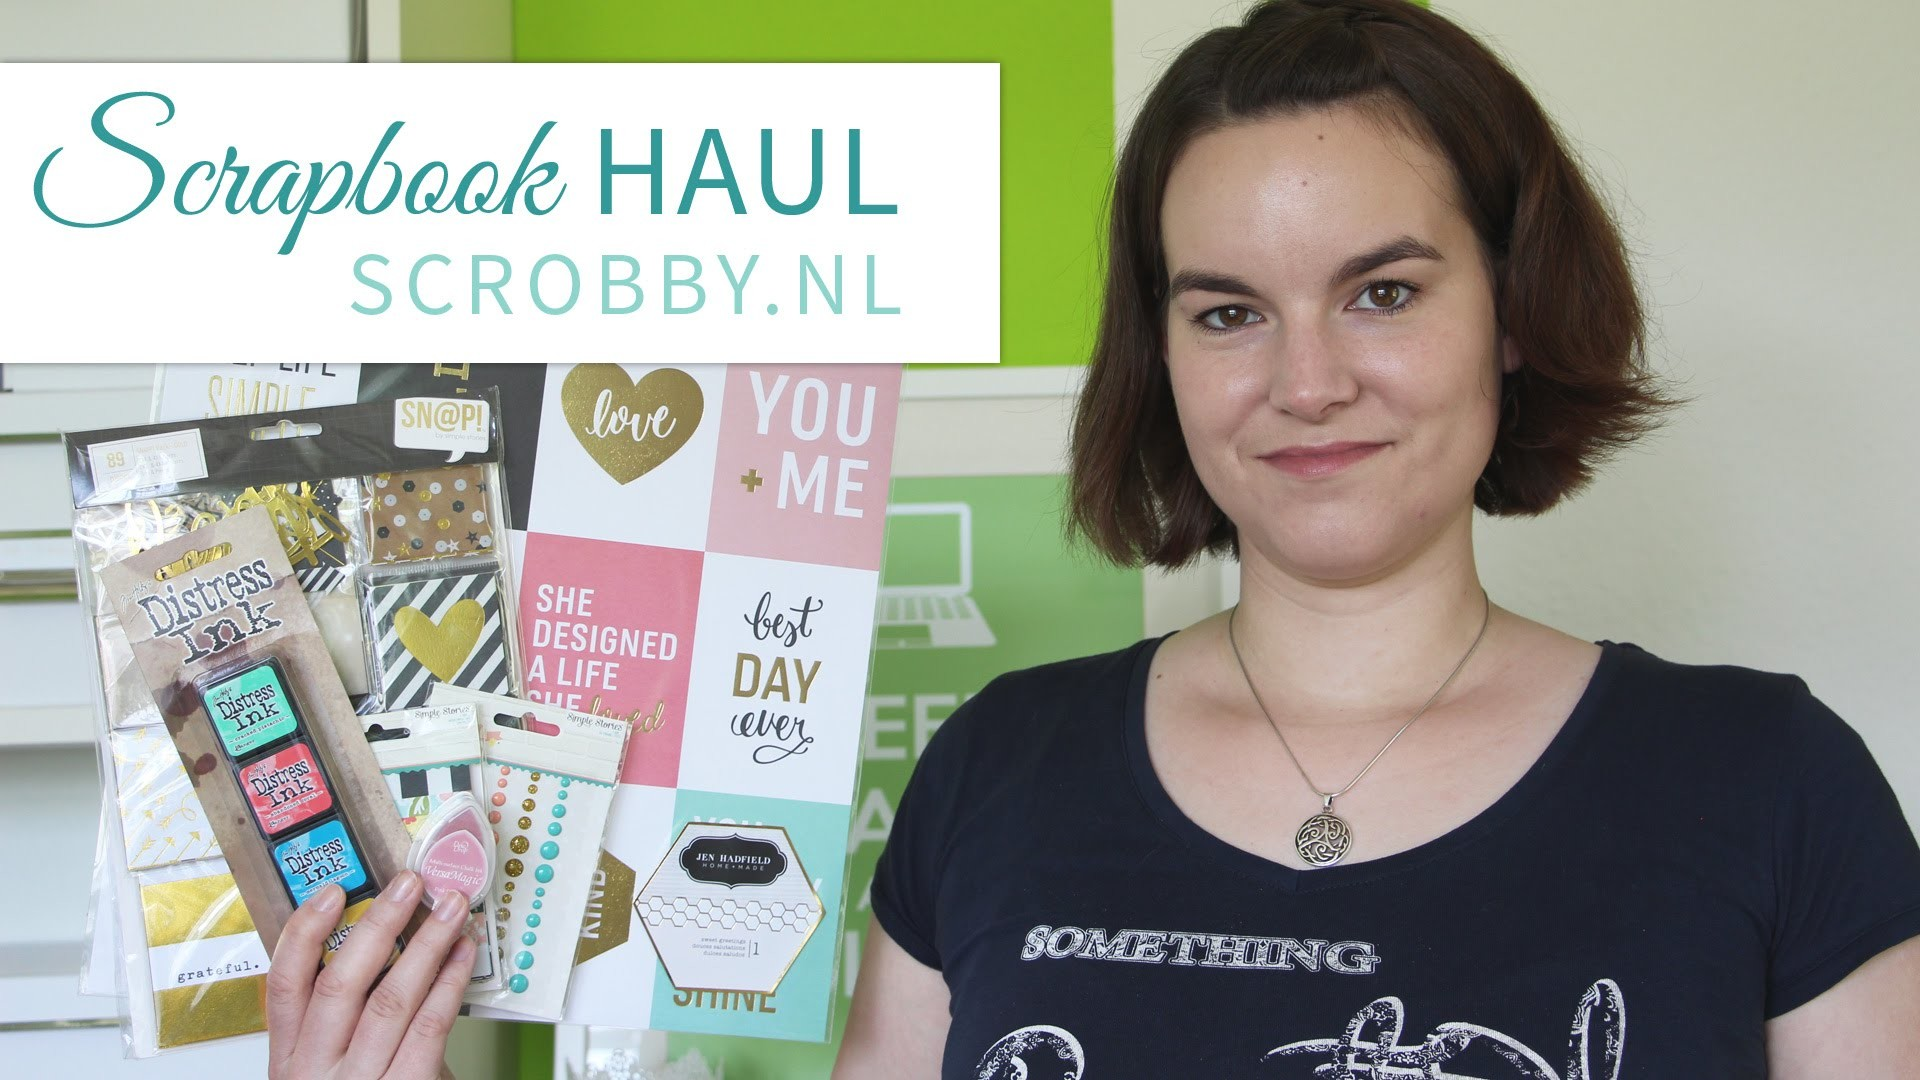 Scrapbook HAUL  ♥ scrobby | Distress Ink, Gold Foil, Project Life